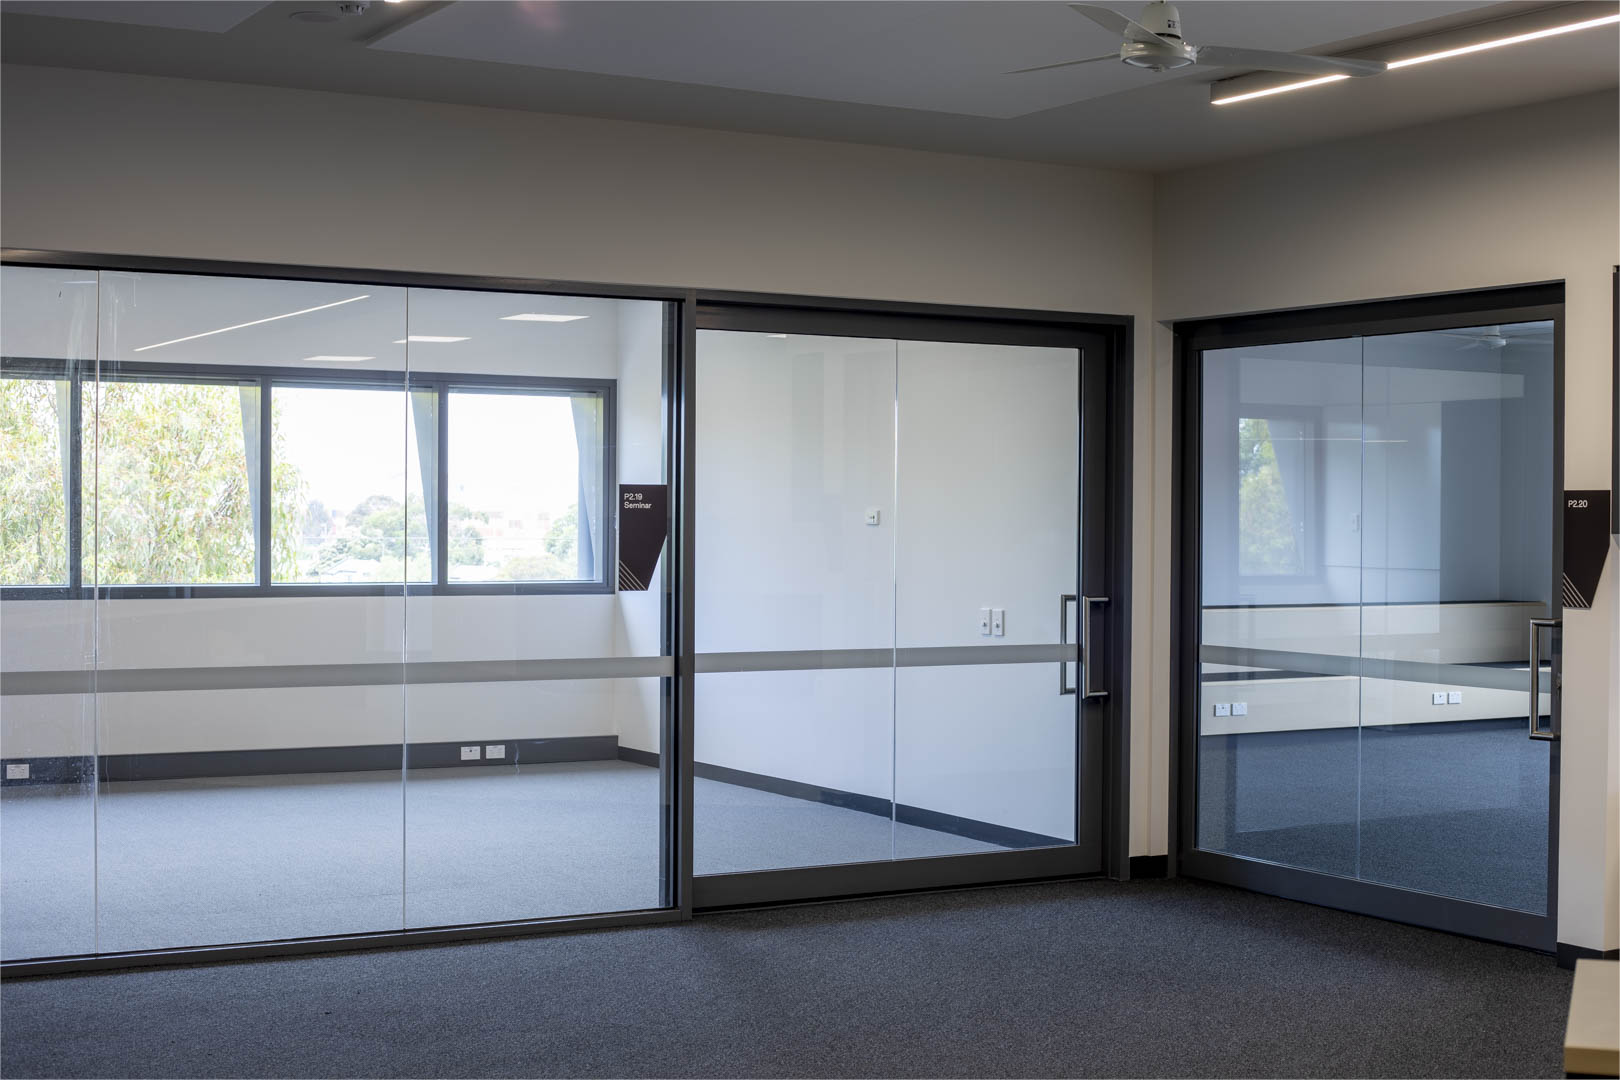 image of a school's acoustic glazed sliding doors with the doors both closed